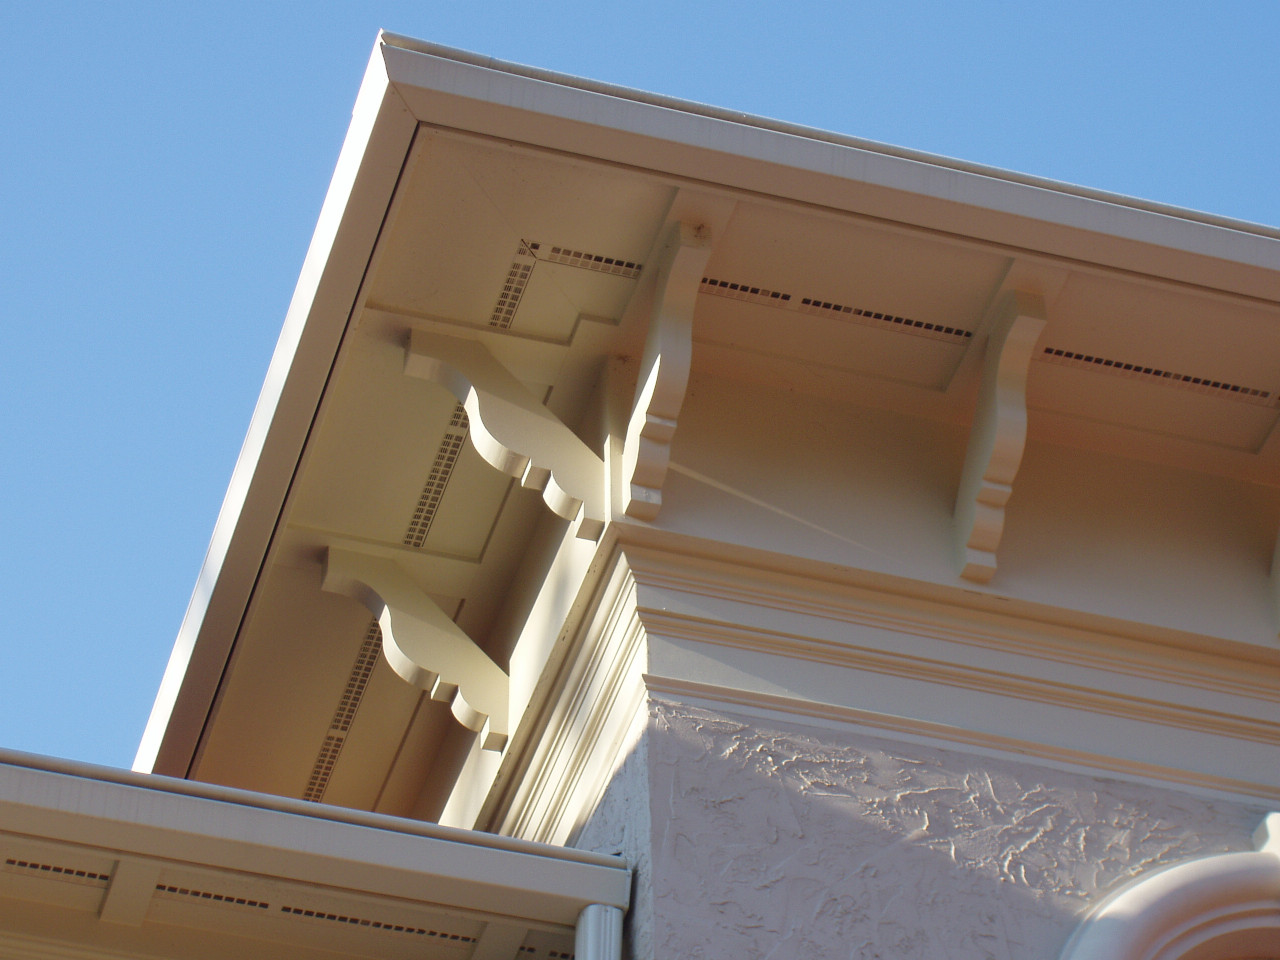 These wood brackets were custom designed to fit this design need.